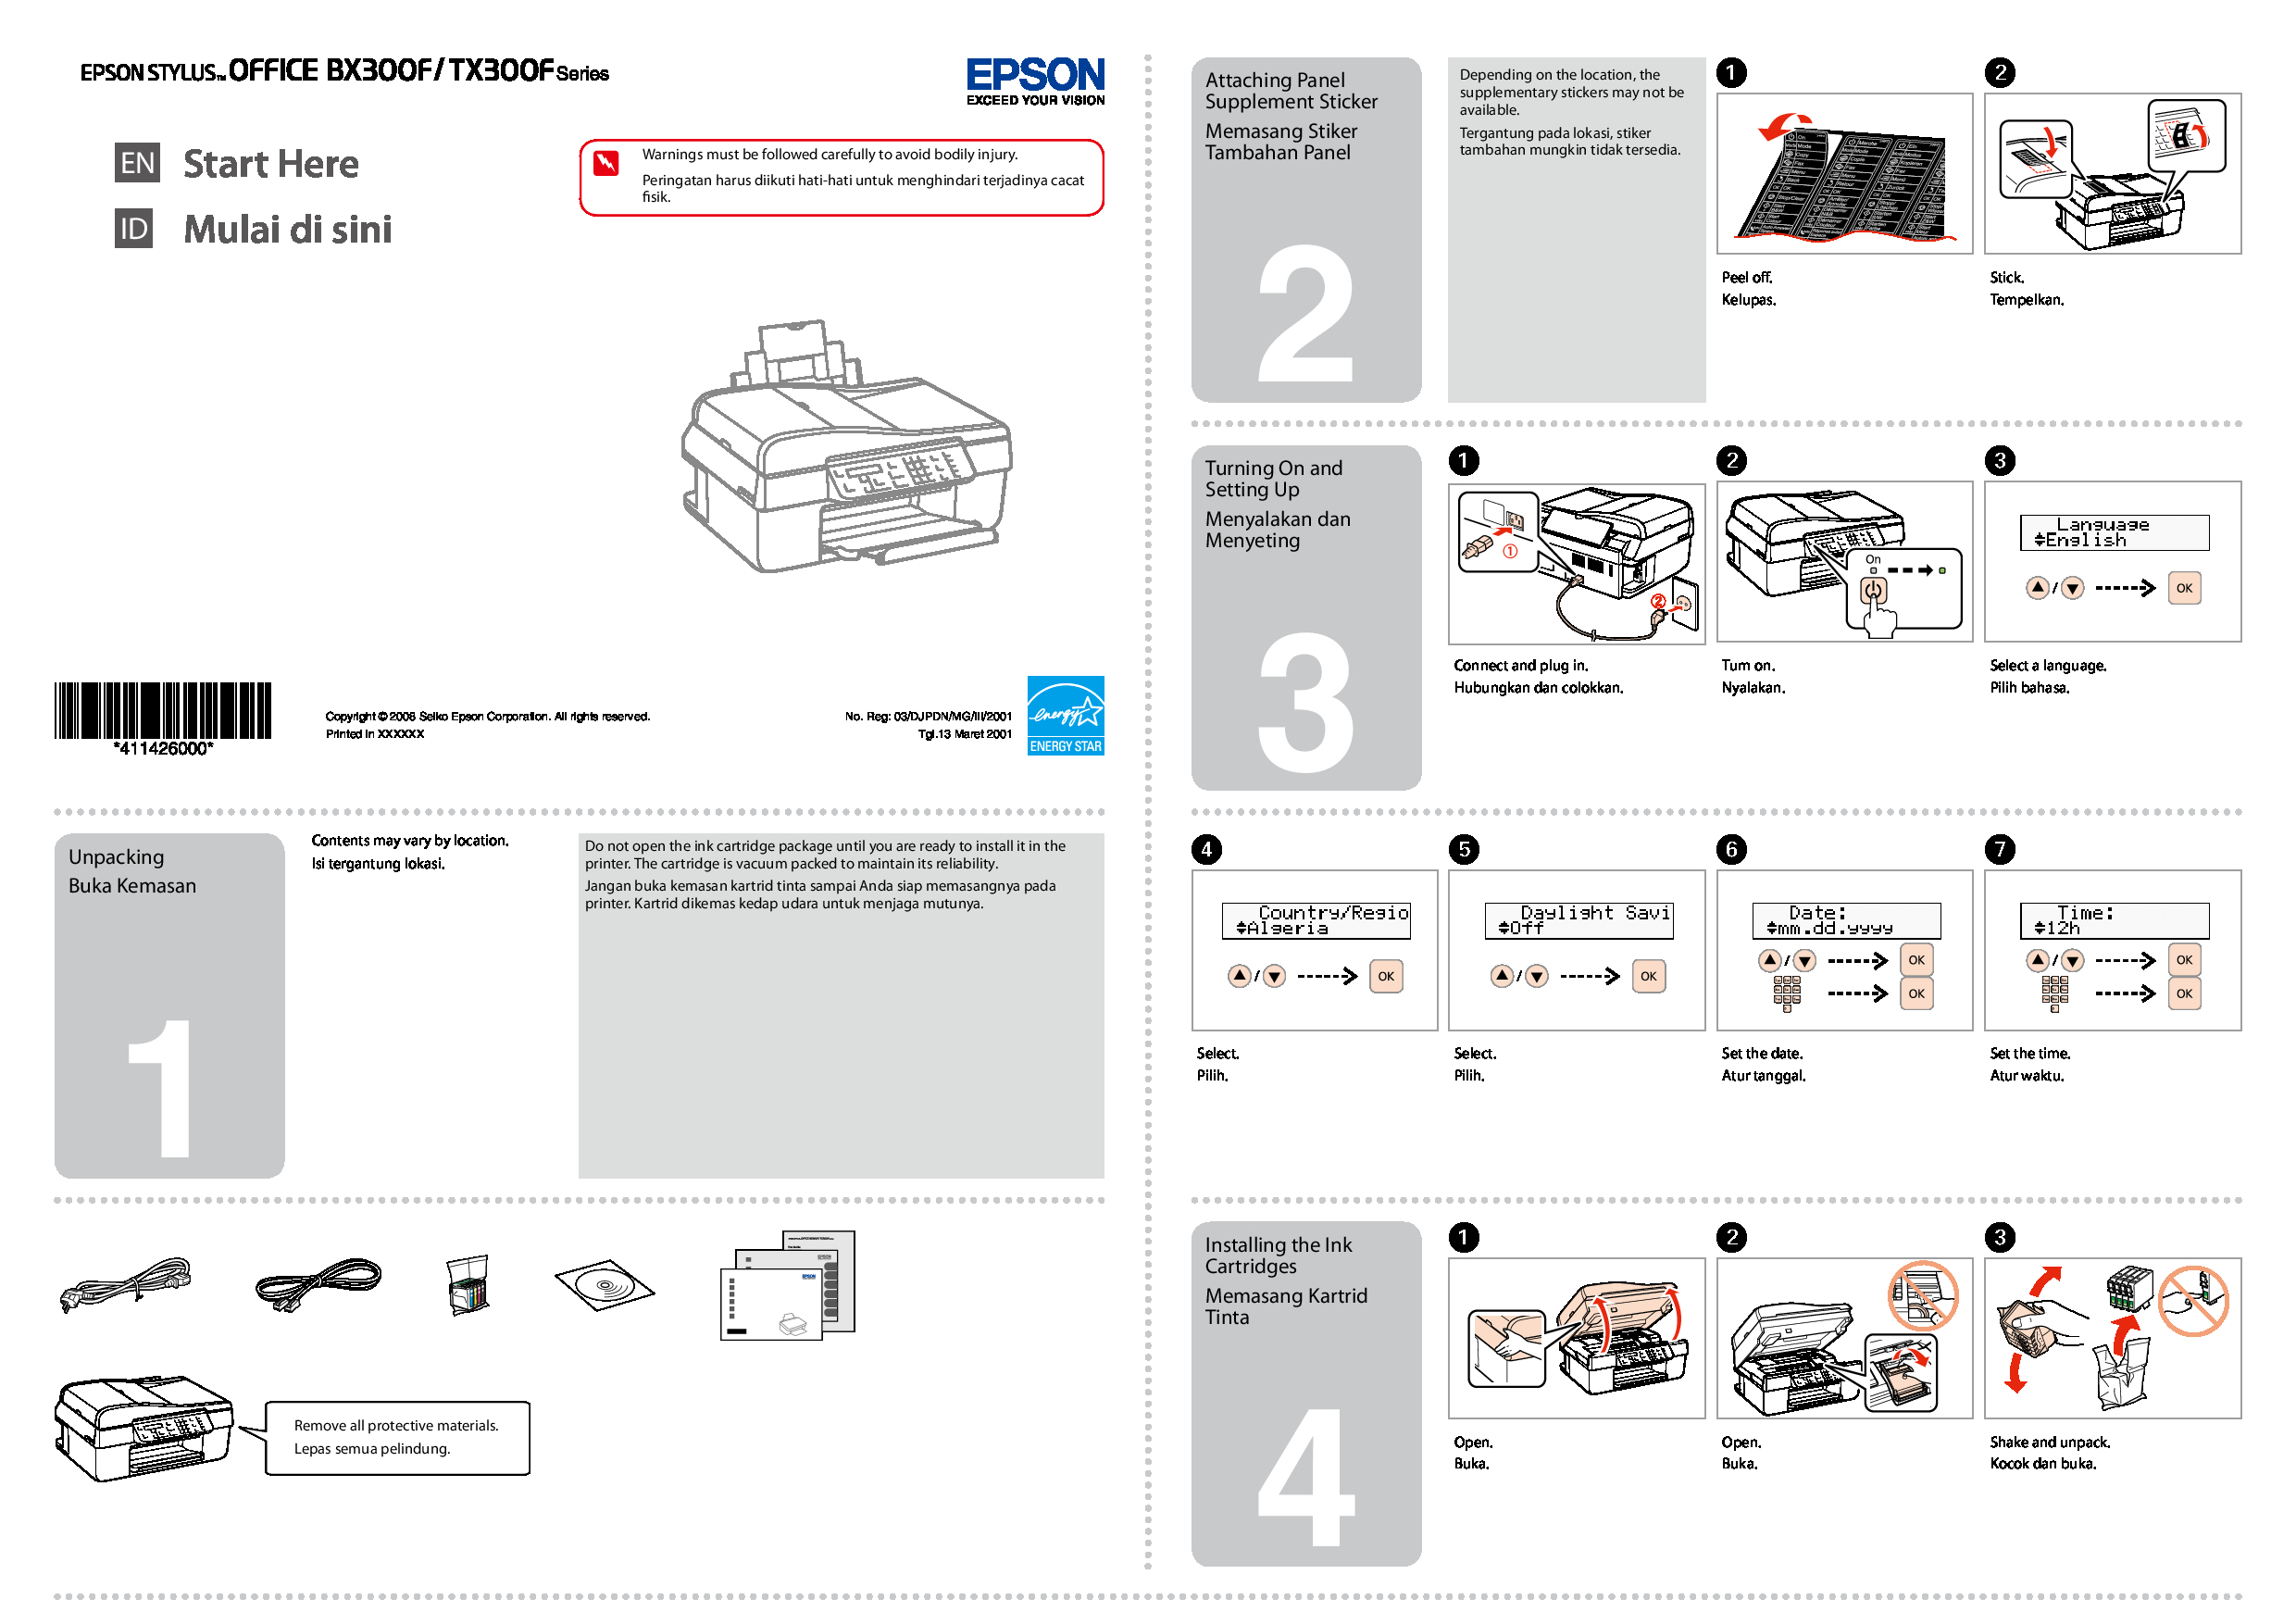 Epson 03/DJPDN/MG/III/2001 Manual